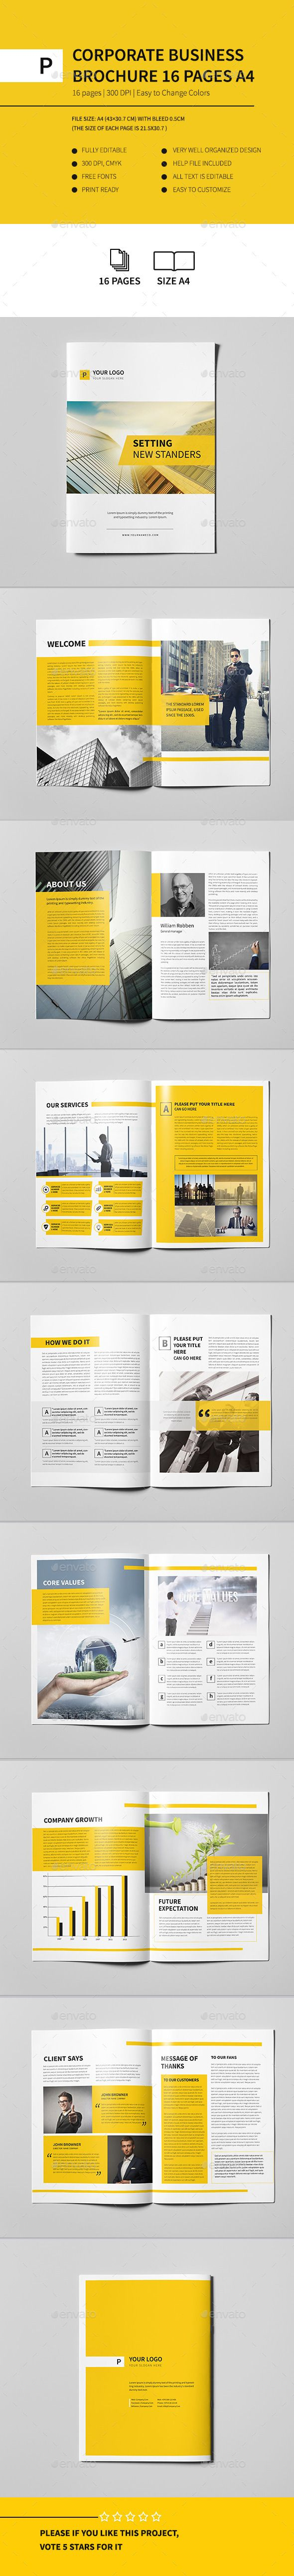 Corporate Business Brochure 16 pages A4  #logo #print ready #format • Click here to download ! http://graphicriver.net/item/corporate-business-brochure-16-pages-a4/12391048?s_rank=985&ref=pxcr